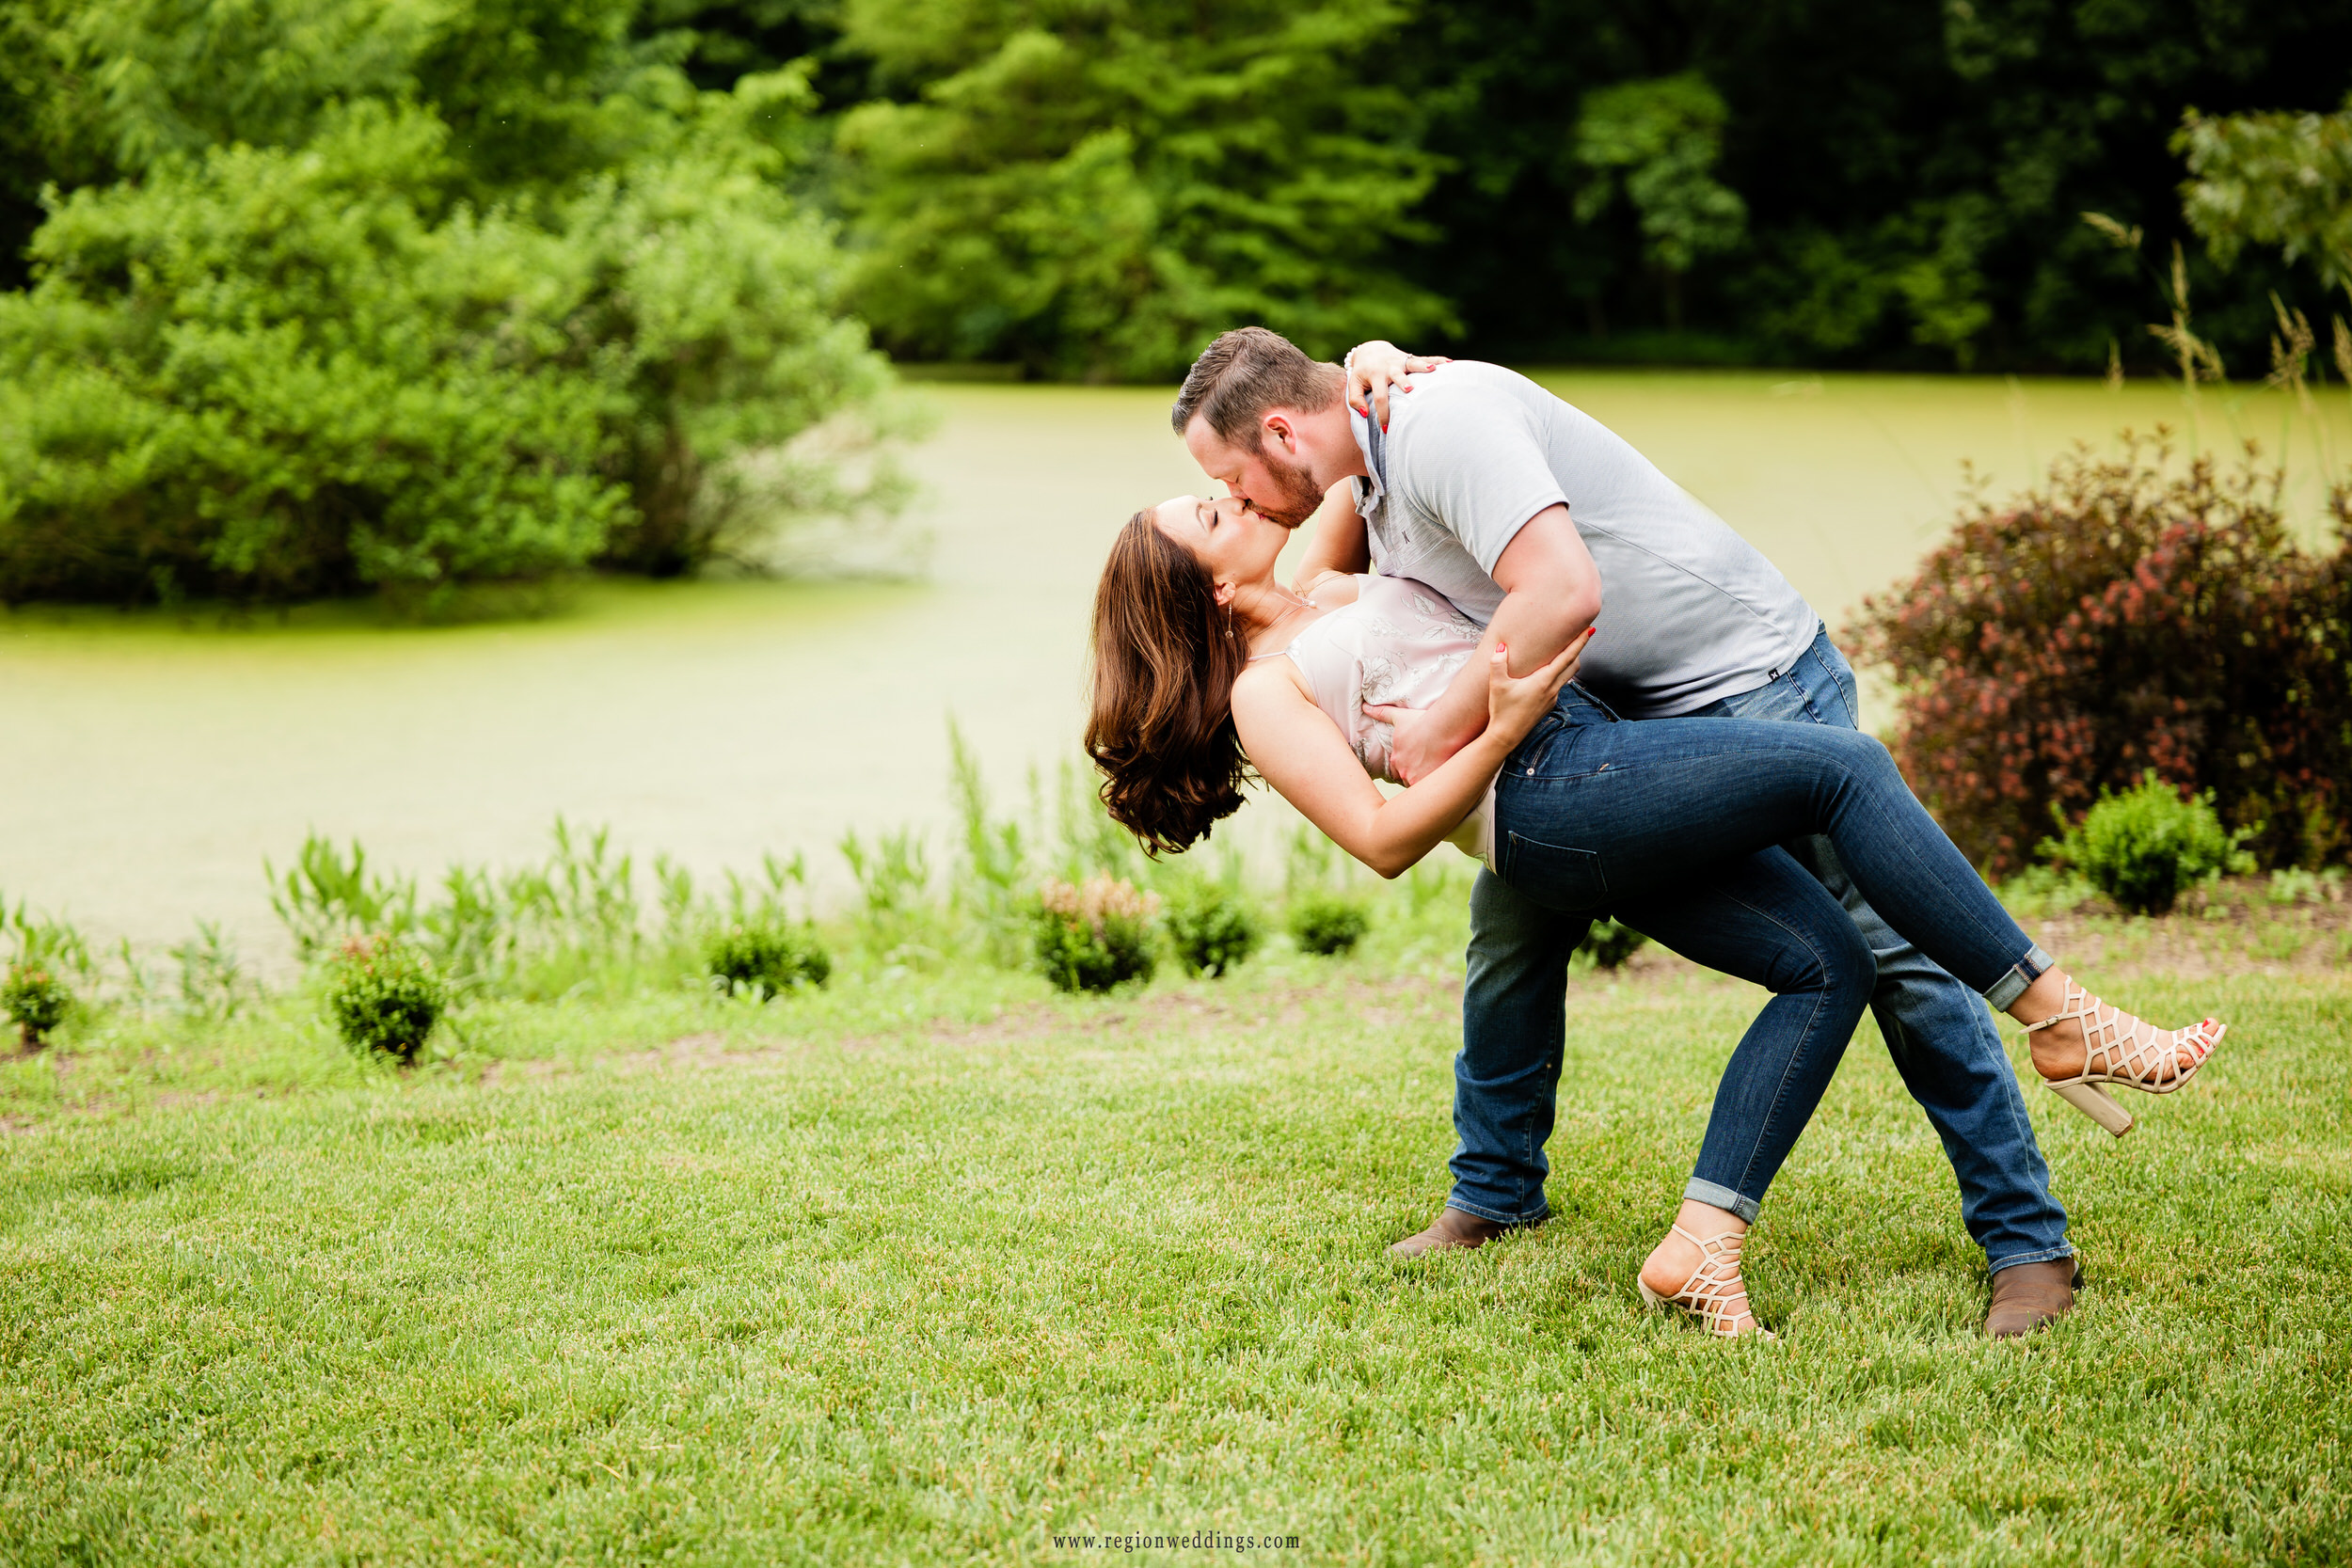 A kiss and dip in front of the lake at Gabis Arboretum.